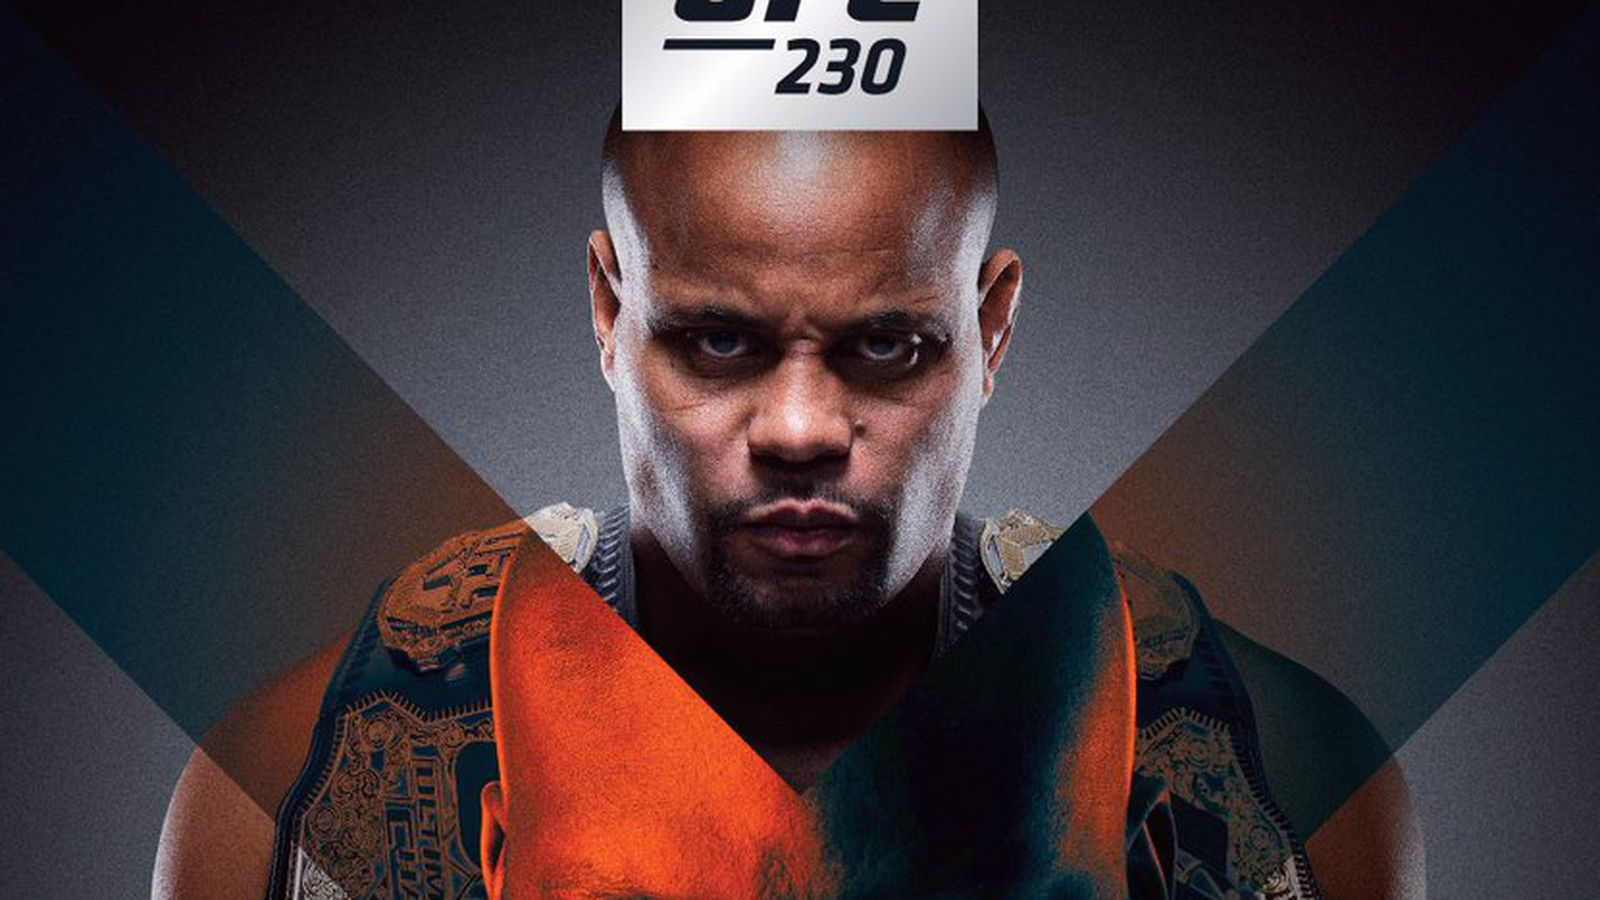 Pic: UFC 230 poster drops for 'Cormier vs Lewis' On Nov. 3